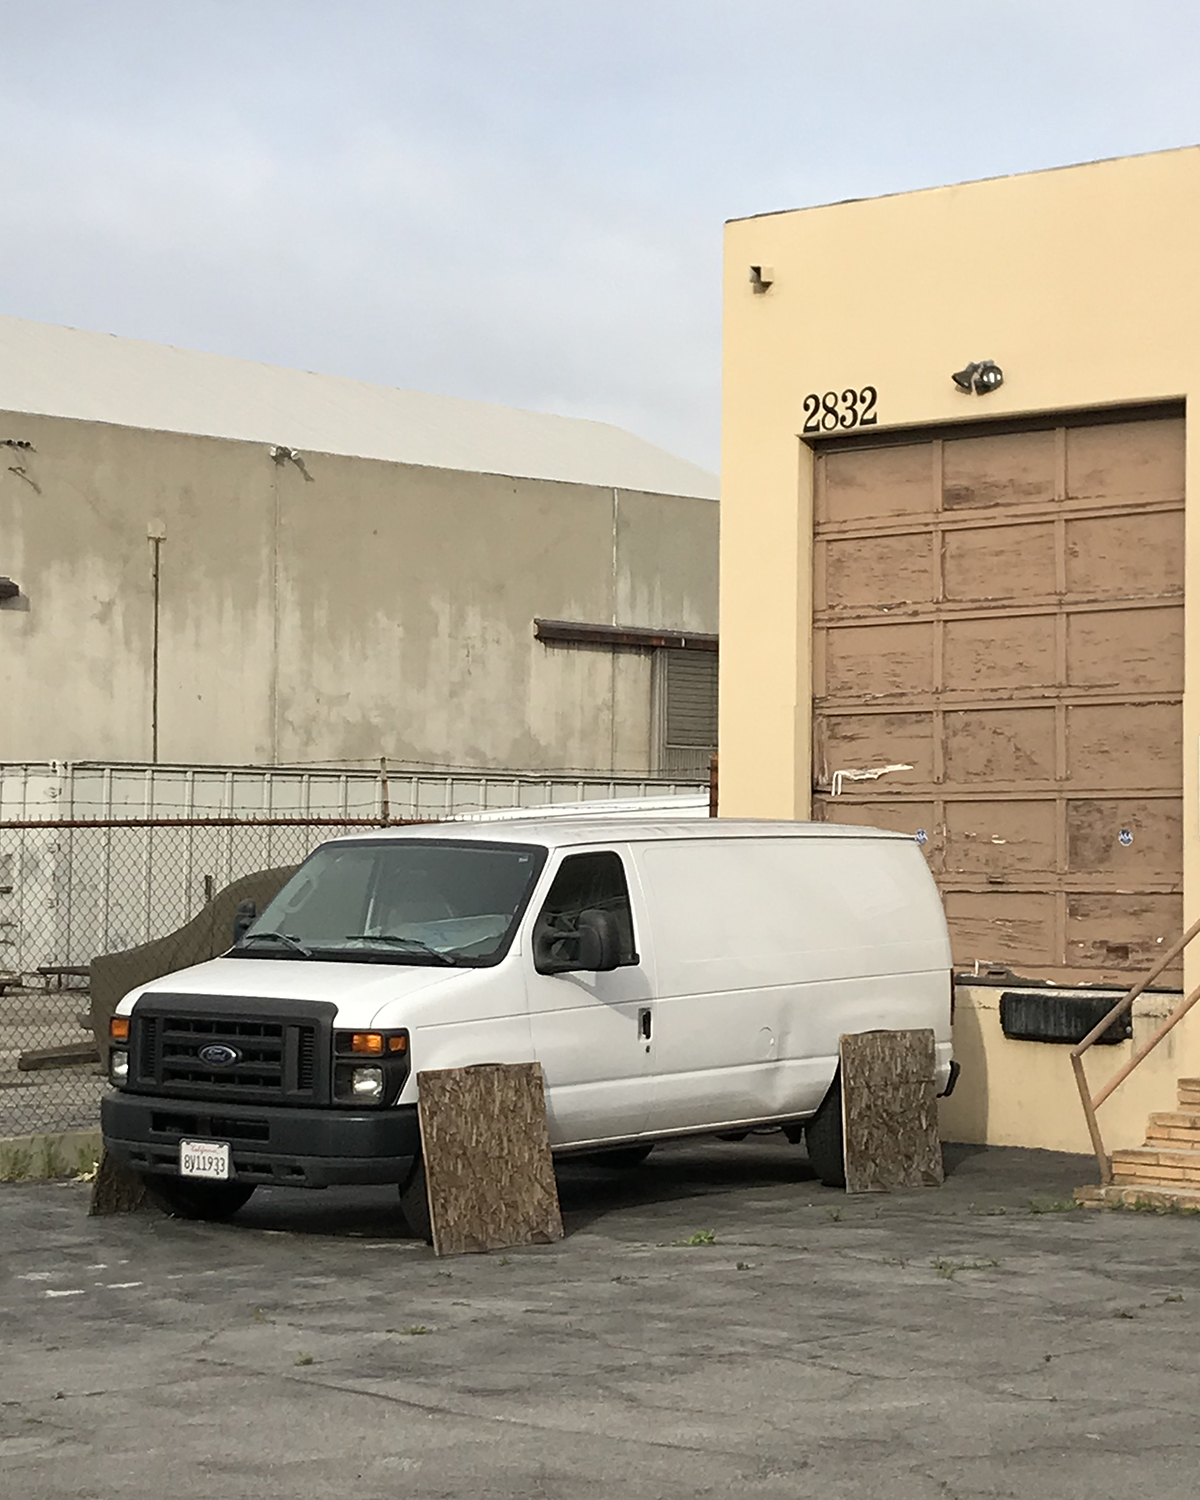 Surreal photograph of a white van without wheels